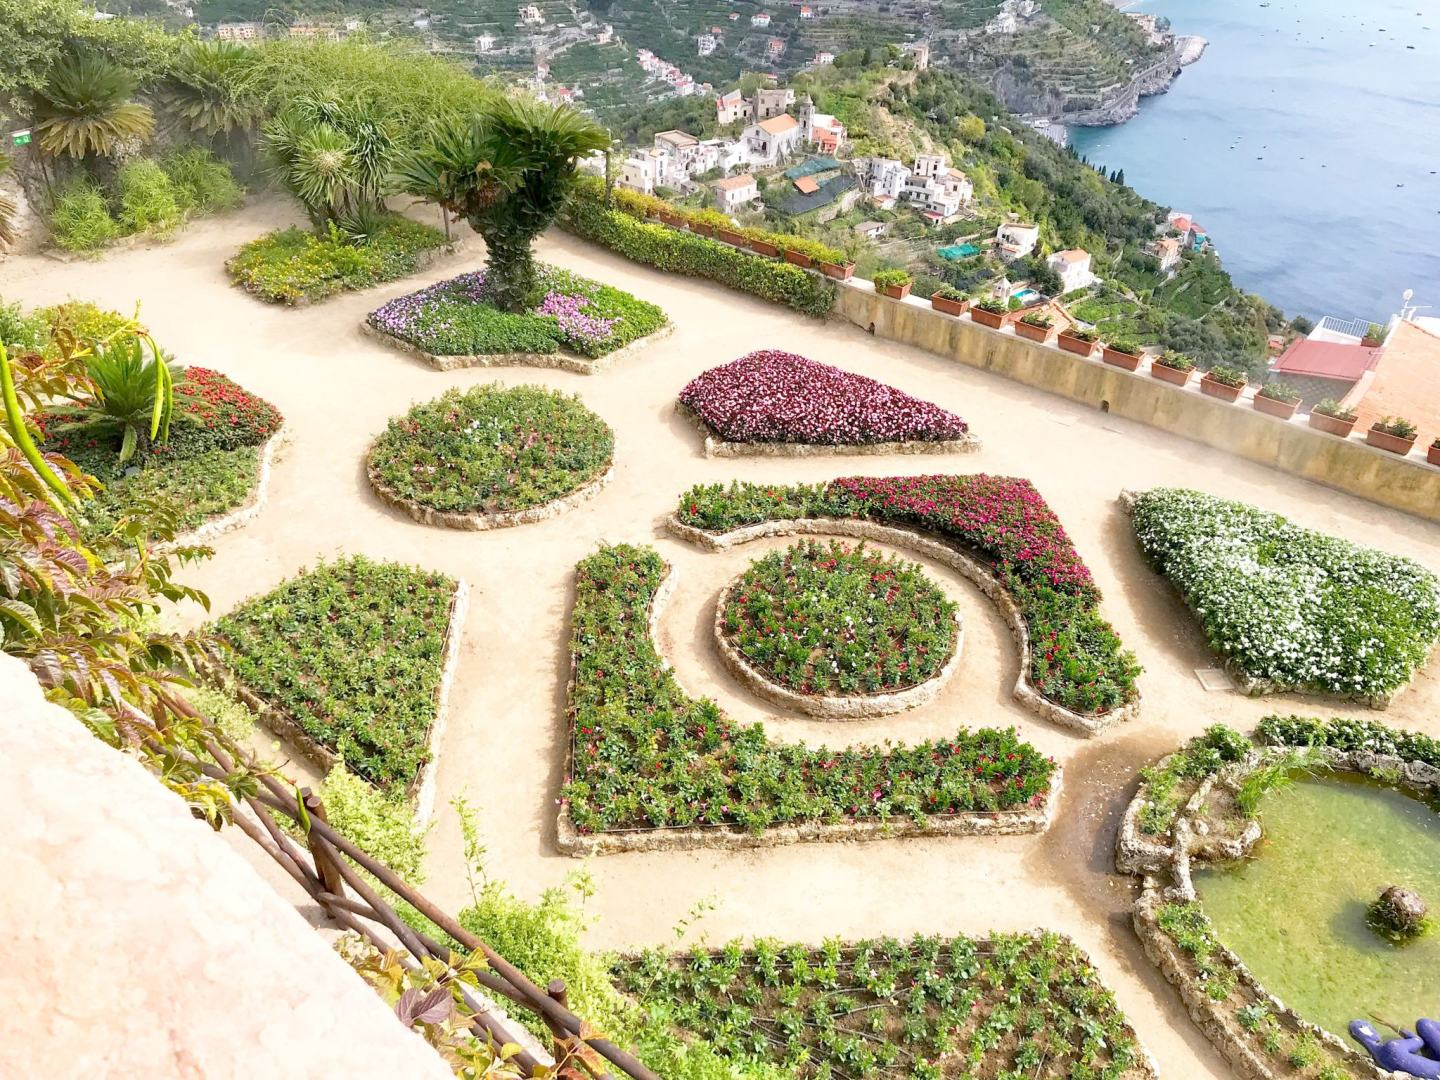 Things to do in Ravello, Italy. Gardens of Ravello Italy.